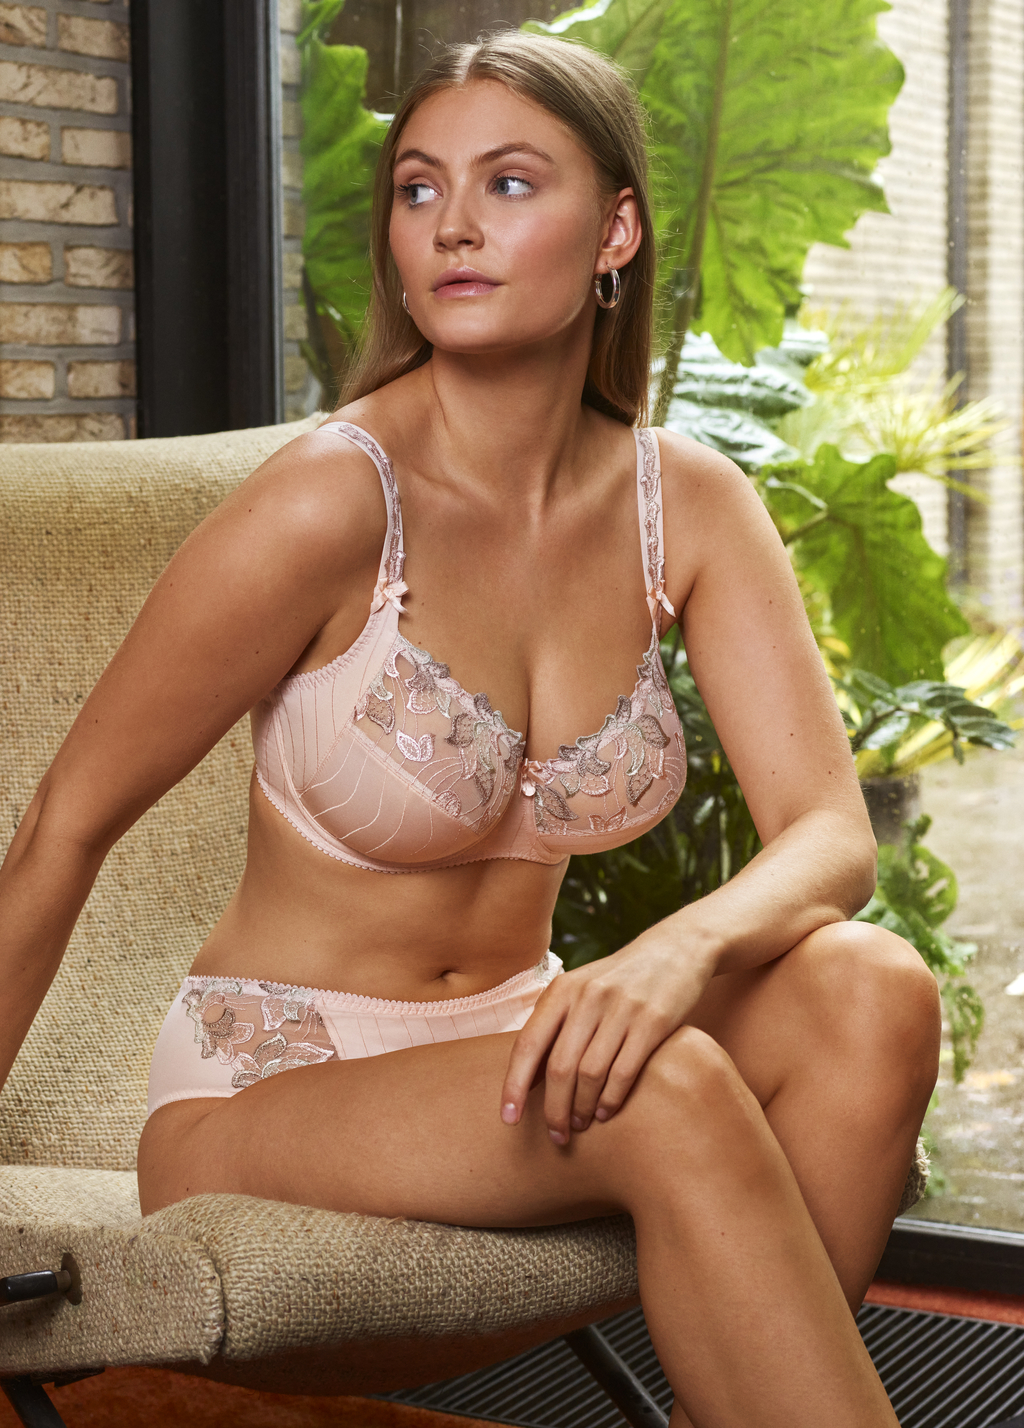 nologo PD MS DEAUVILLE SKT FULL CUP WIRE BRA-0149 1024 0 72 RGB